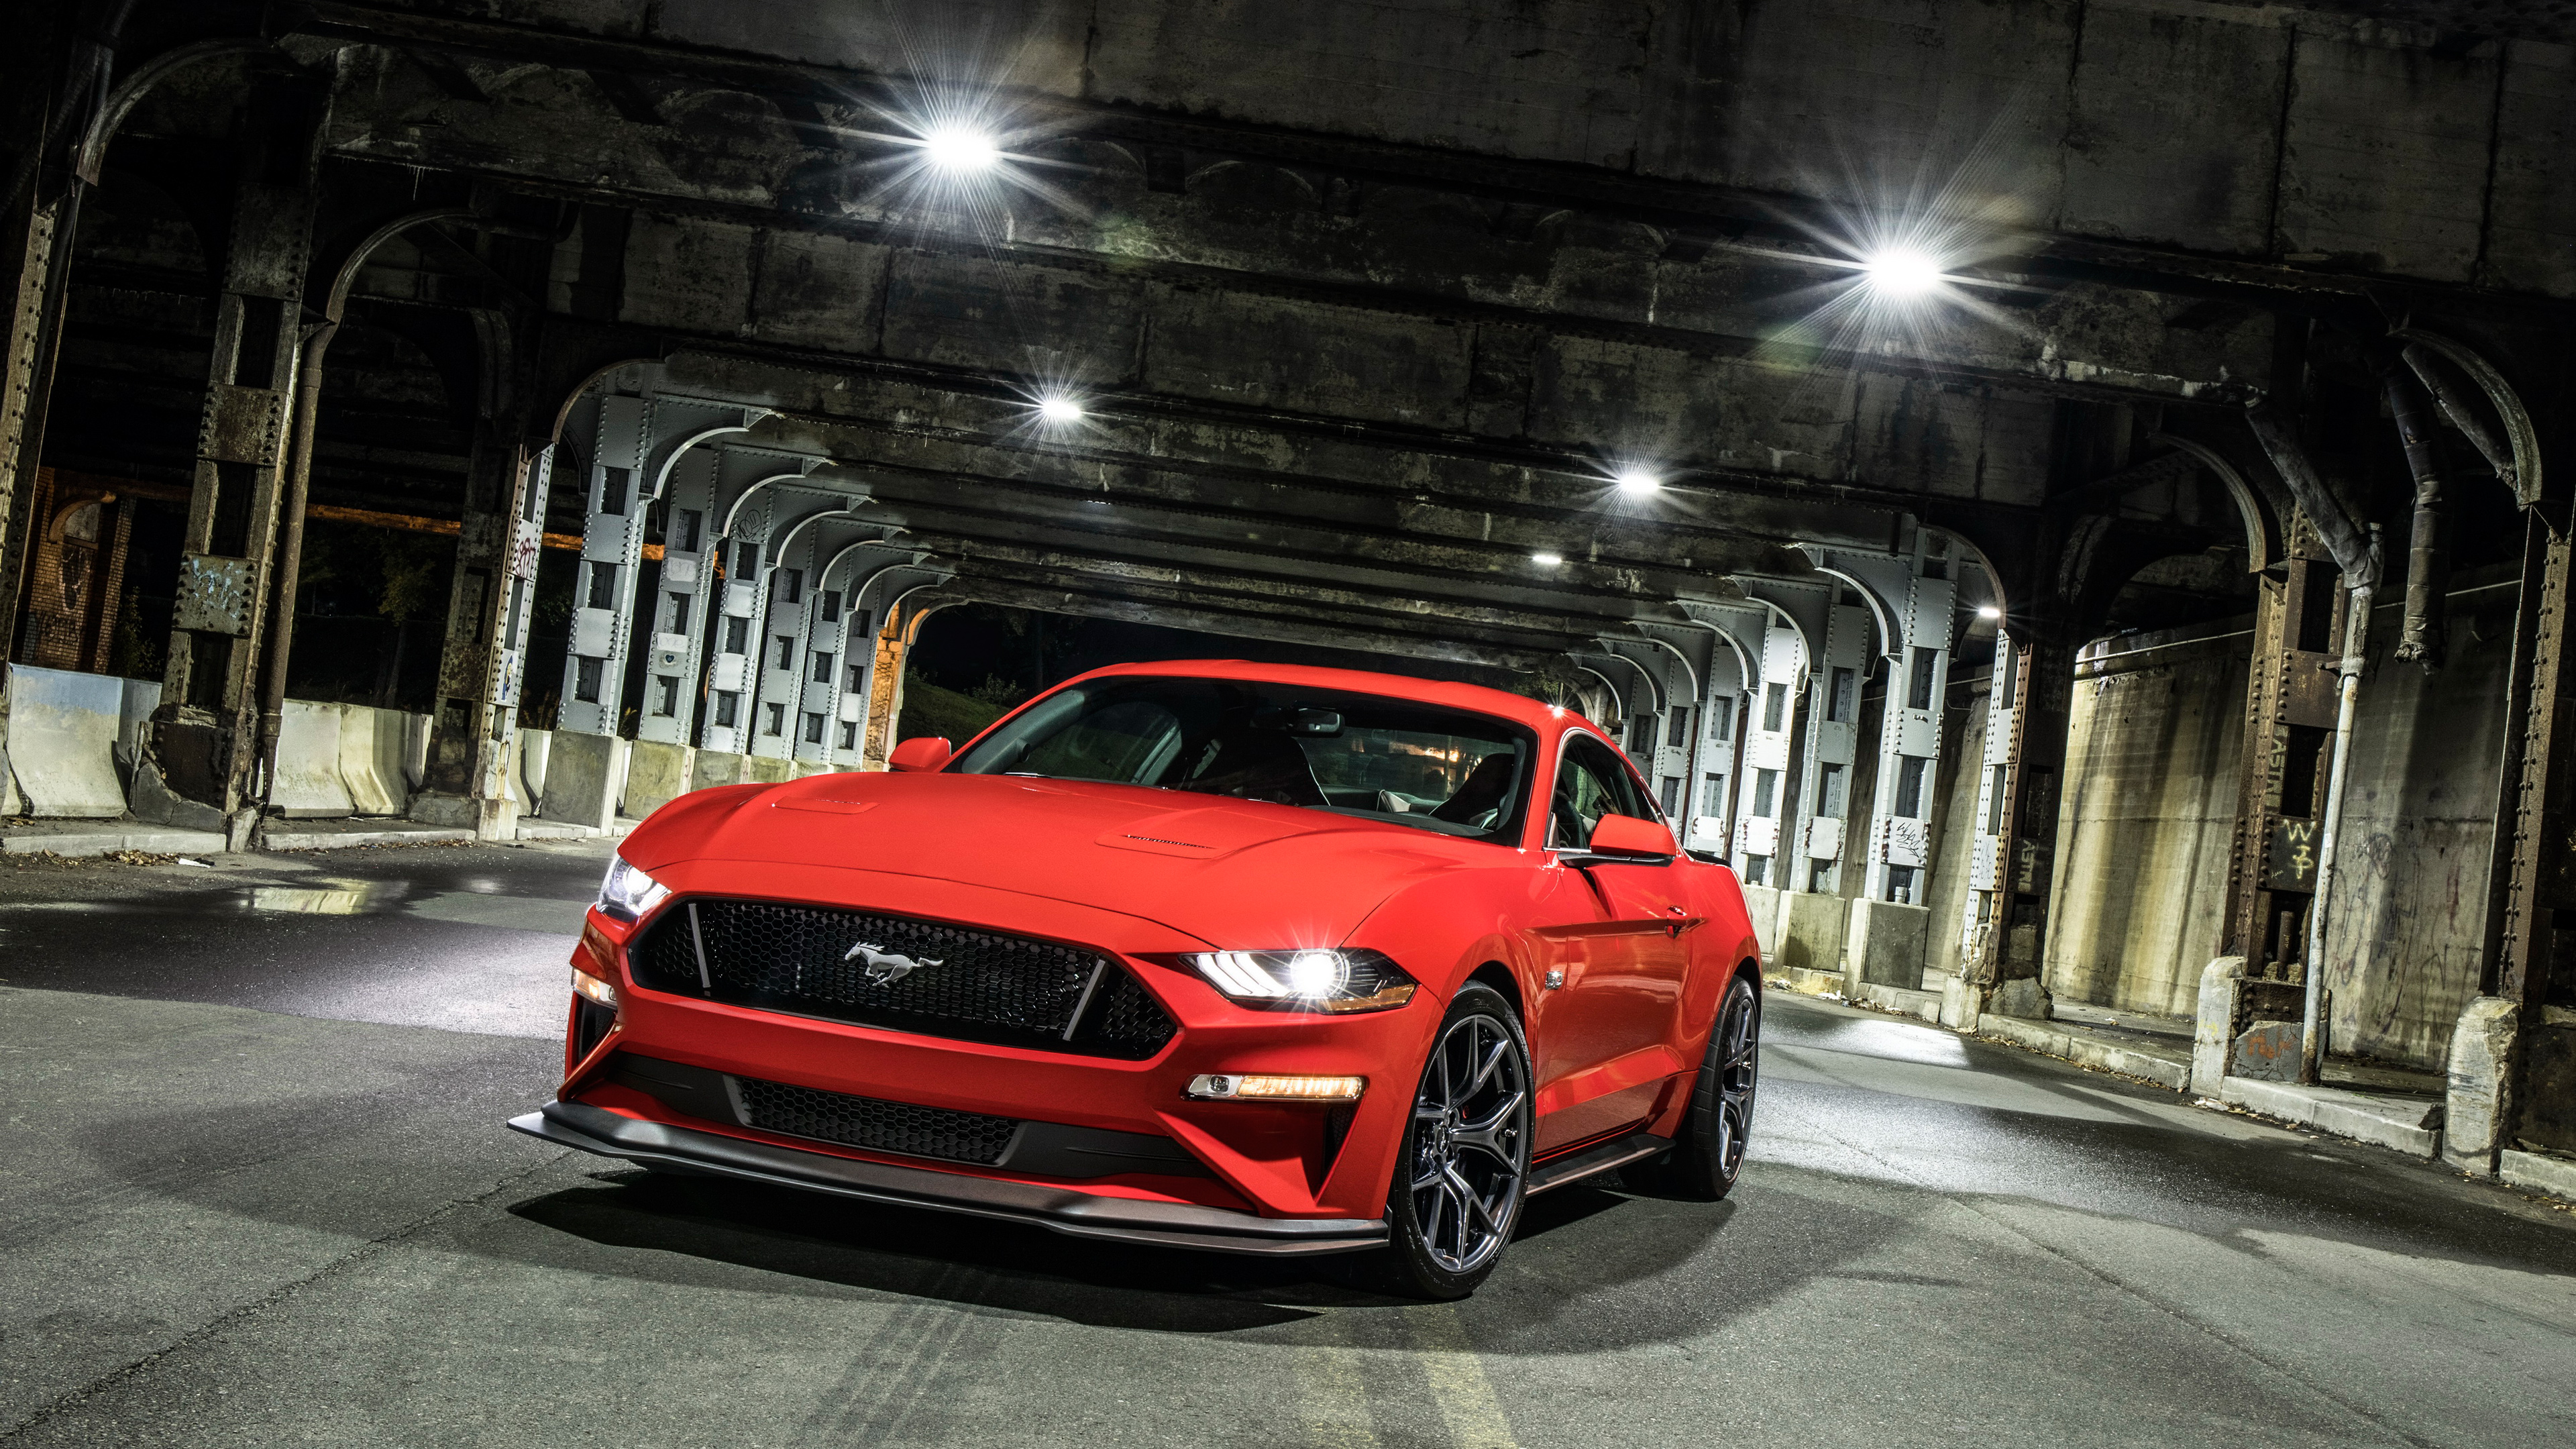 bentley car full hd wallpaper with 2018 Ford Mustang Gt Level 2 Performance Pack 4k 6 Wallpapers on 2017 alfa romeo giulia quadrifoglio Wallpapers as well 2019 Audi A8 A8l First Drive Review Level 3 Autonomy Parking Electromechanical Suspension as well 2017 Honda Cbr650f further 2016 chevy camaro Wallpapers also Toyota Supra Wallpapers.